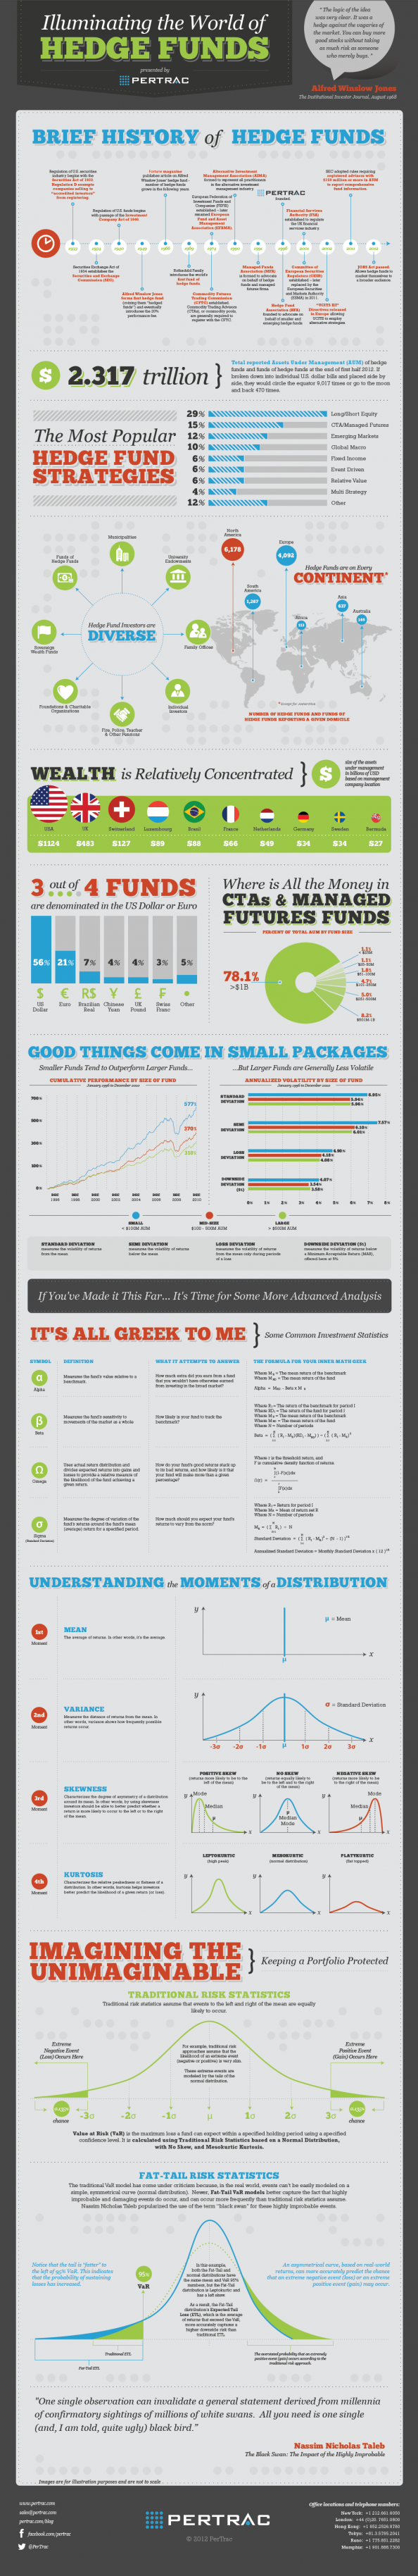 Illuminating the World of Hedge Funds Infographic